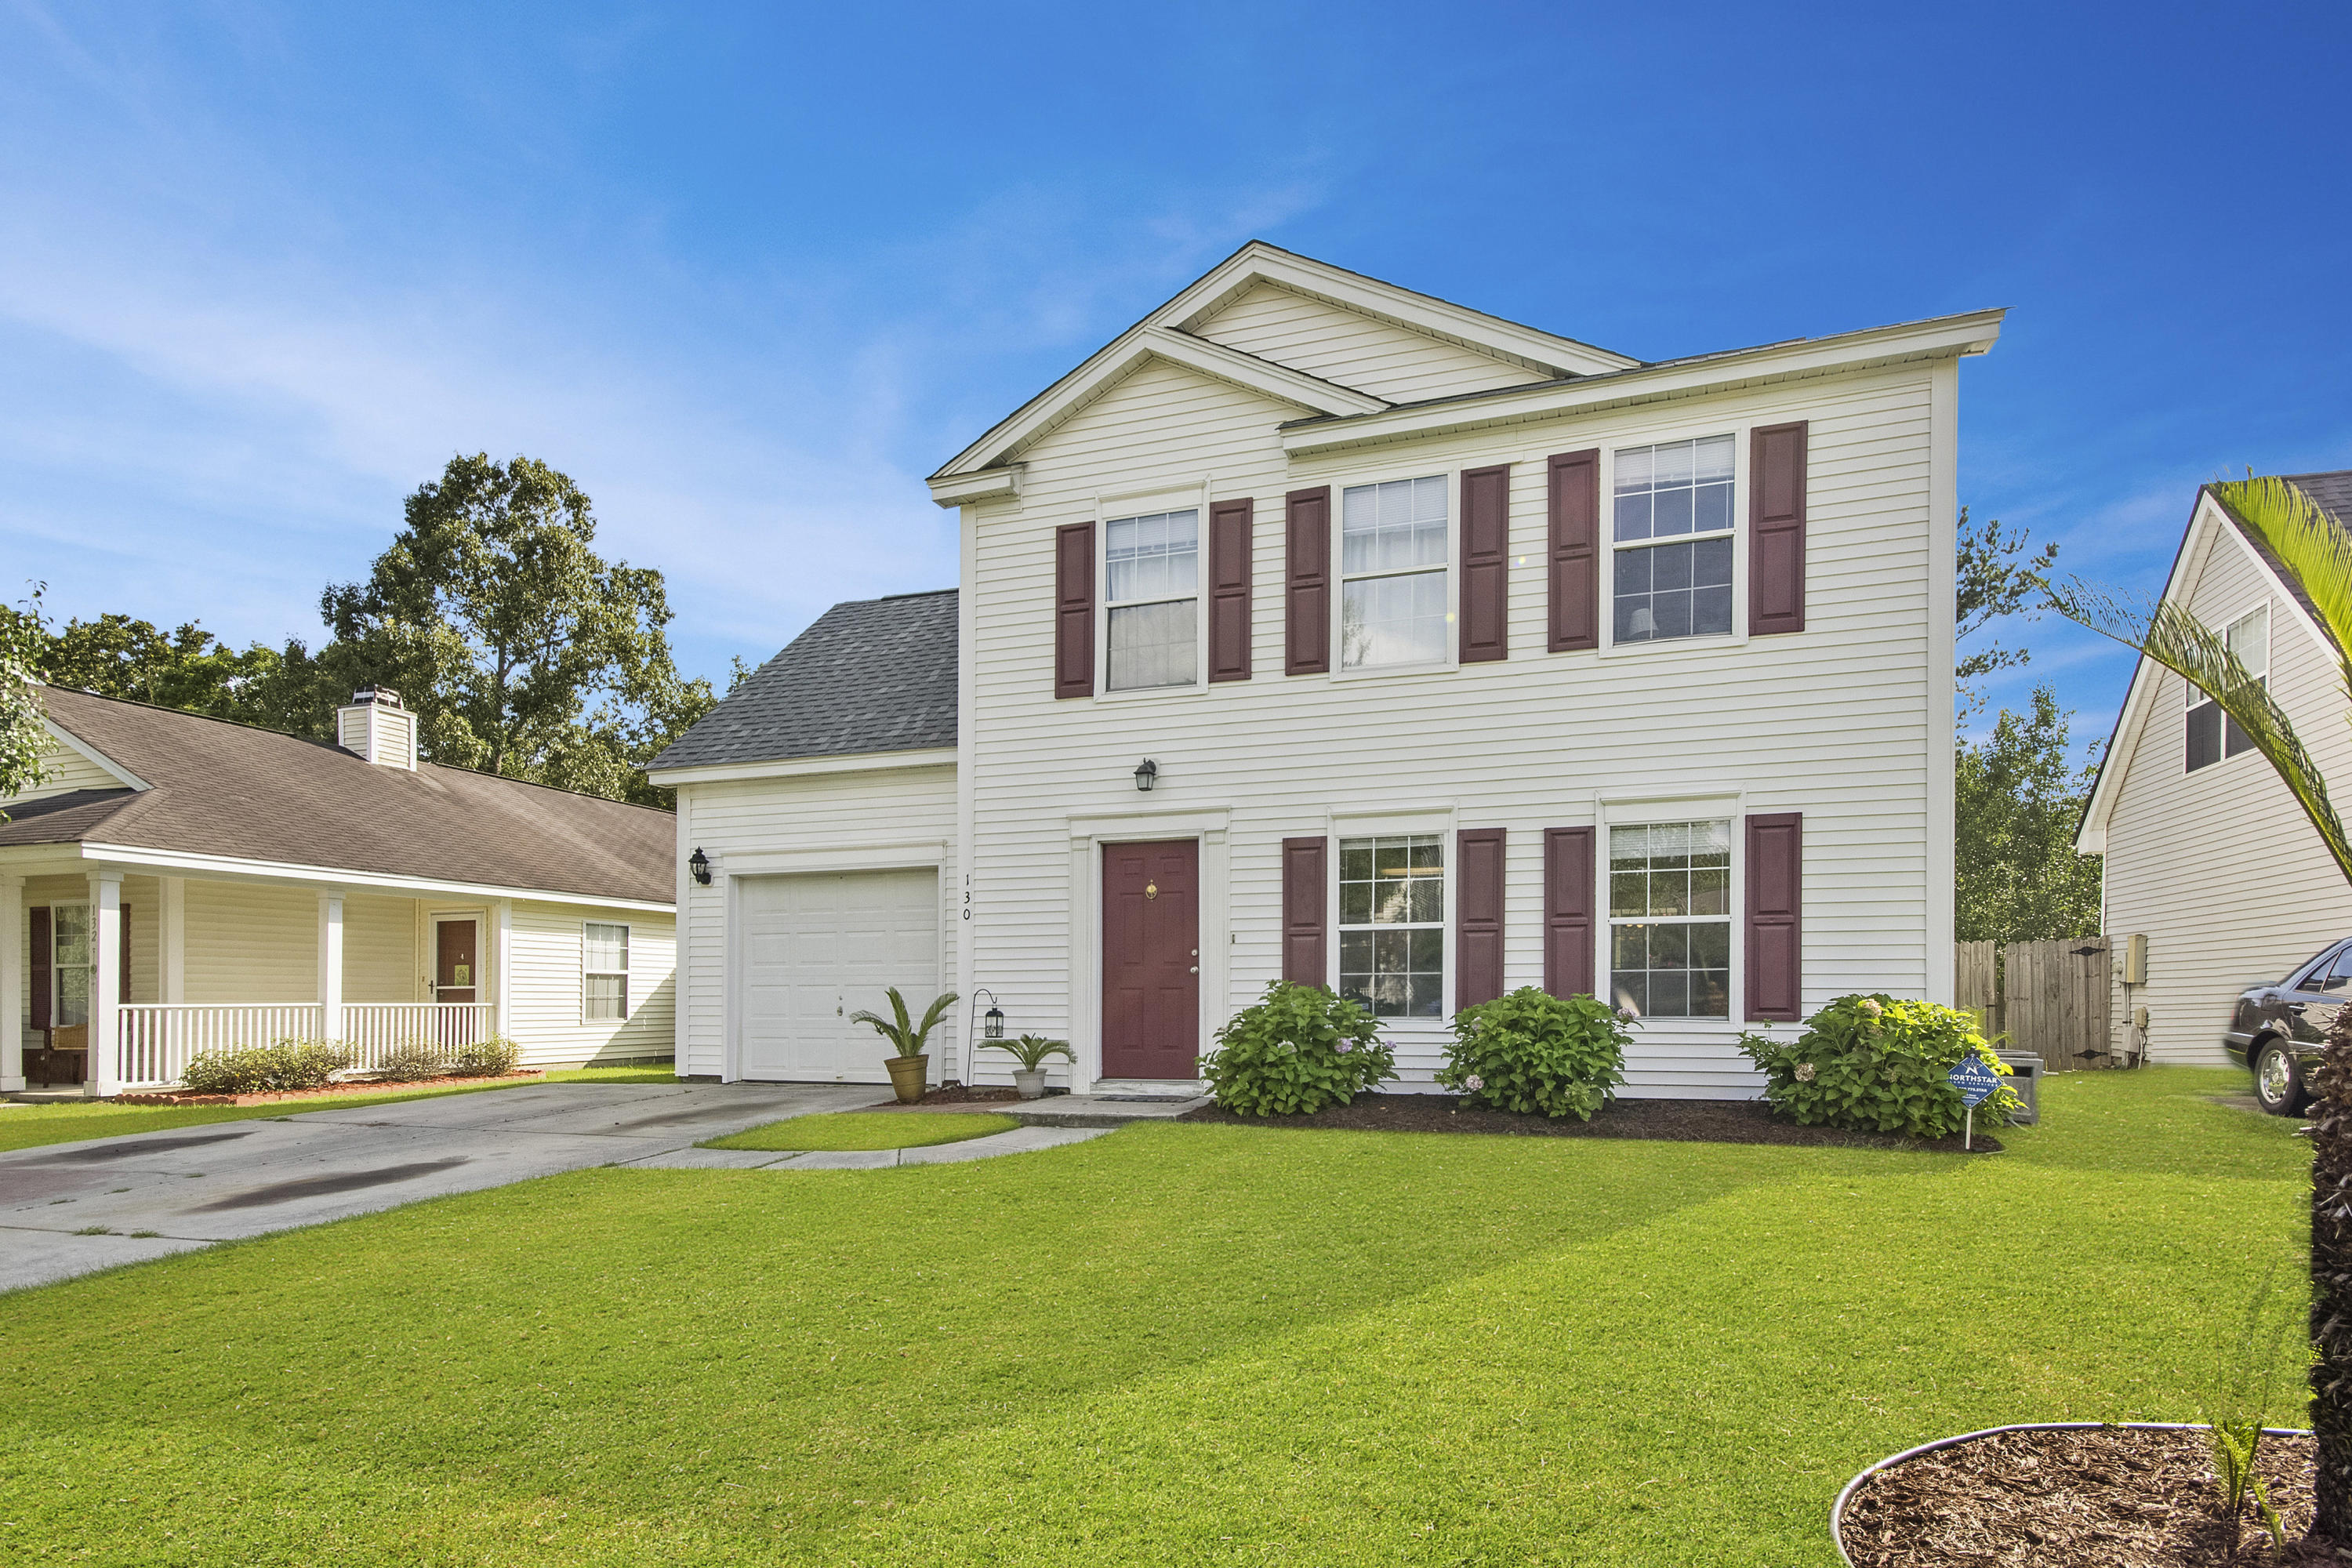 130 Two Pond Loop Ladson, Sc 29456